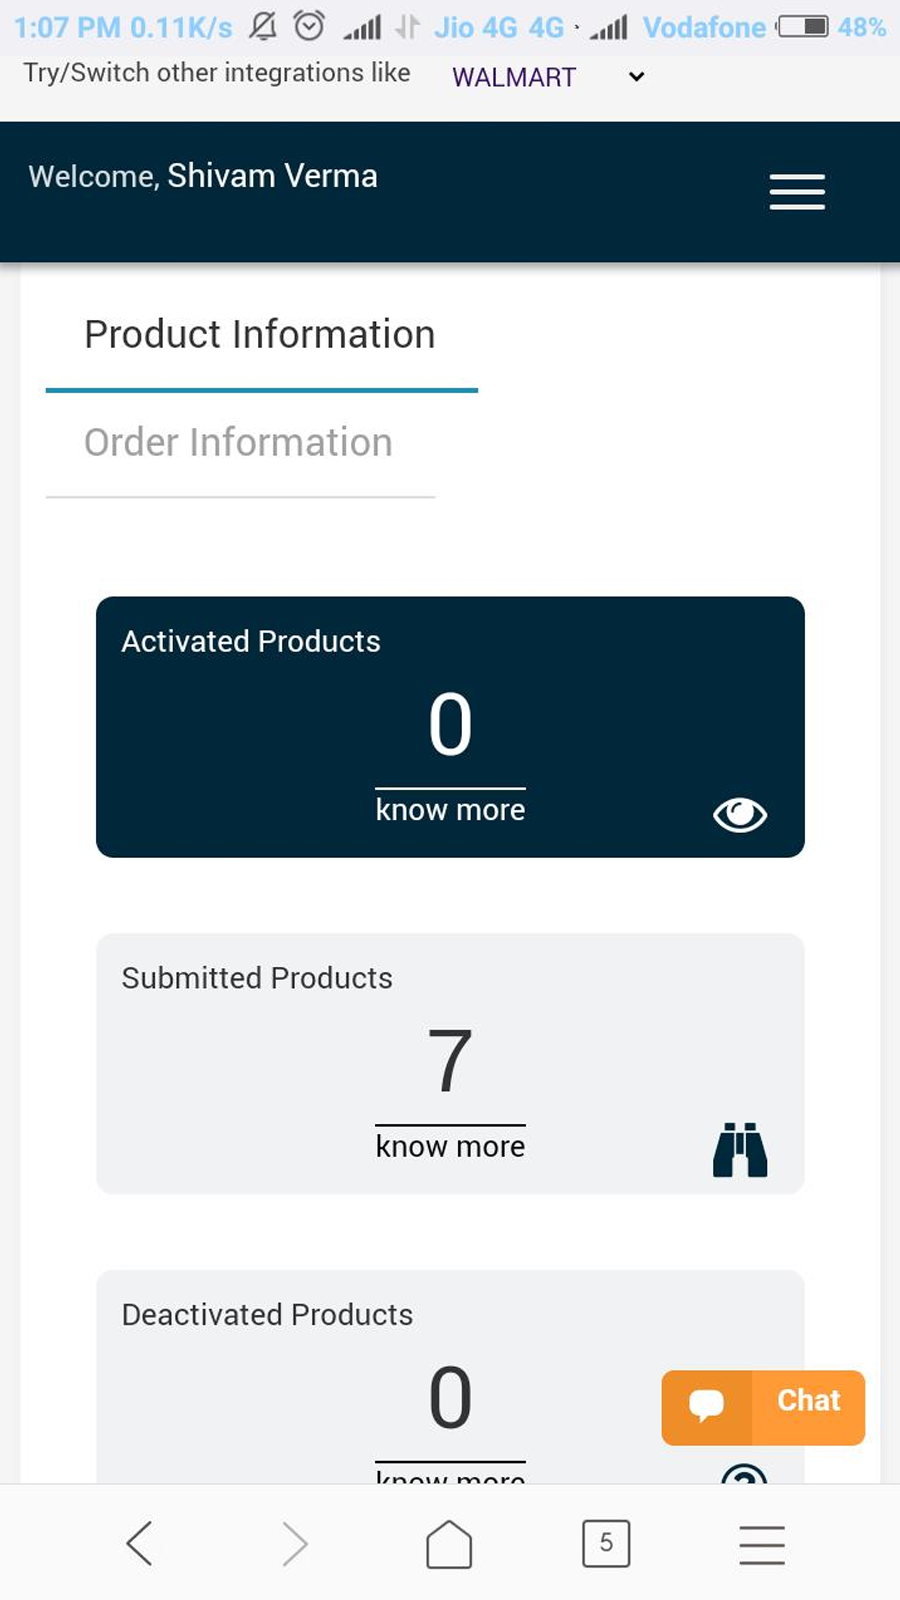 Products Infromation with it's status